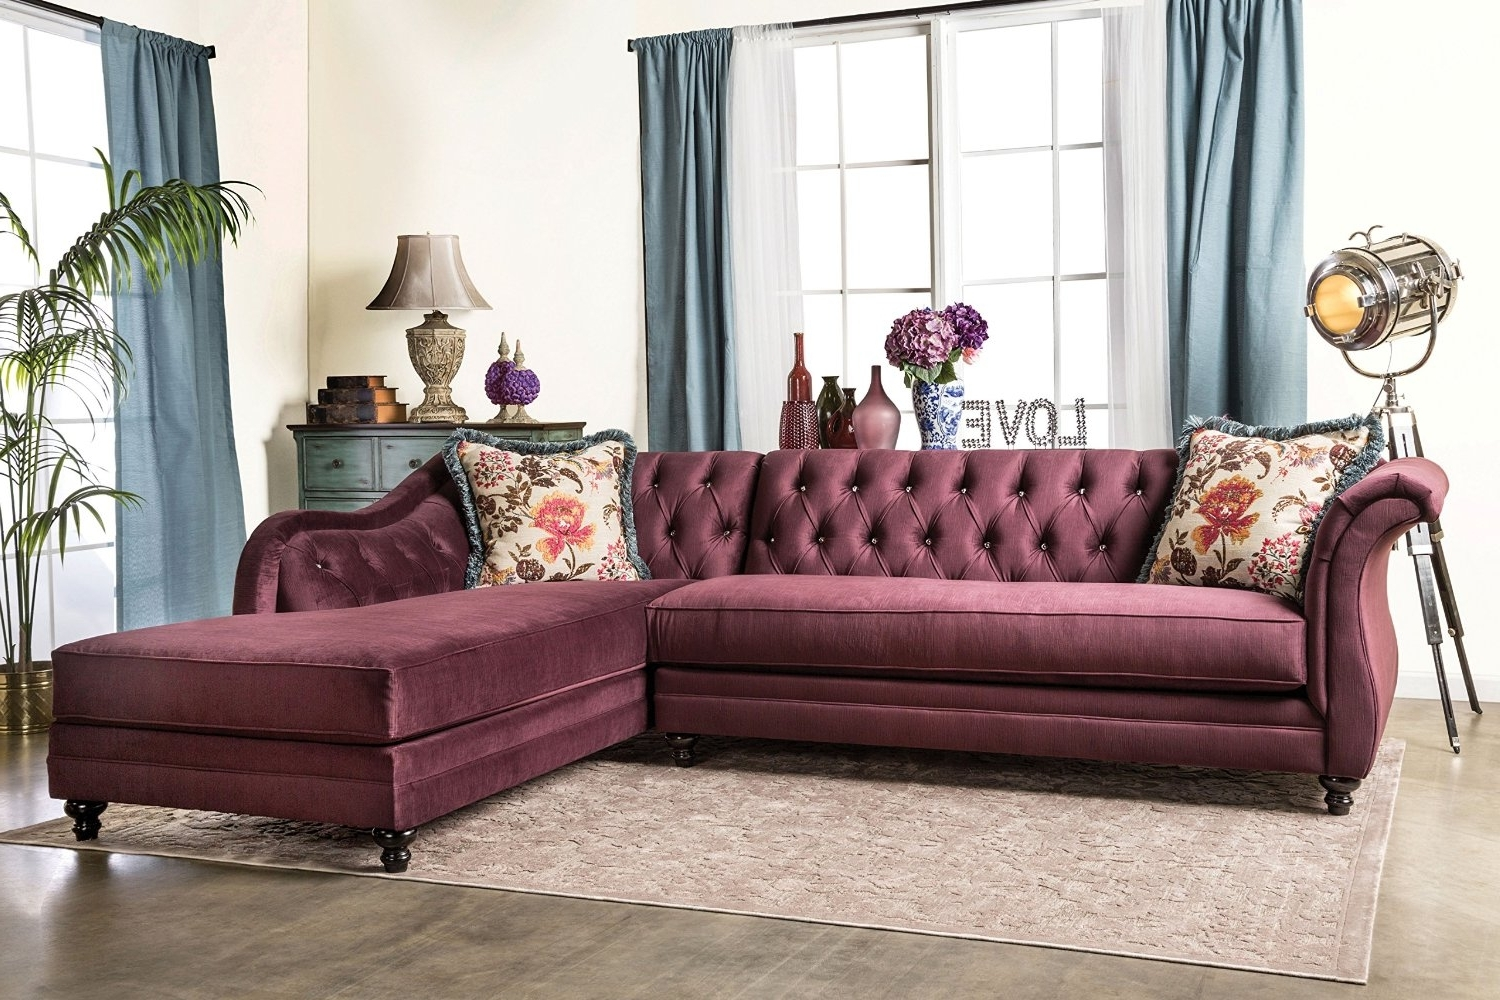 Chesterfield Sofas And Chairs Within Latest 25 Best Chesterfield Sofas To Buy In  (View 4 of 15)